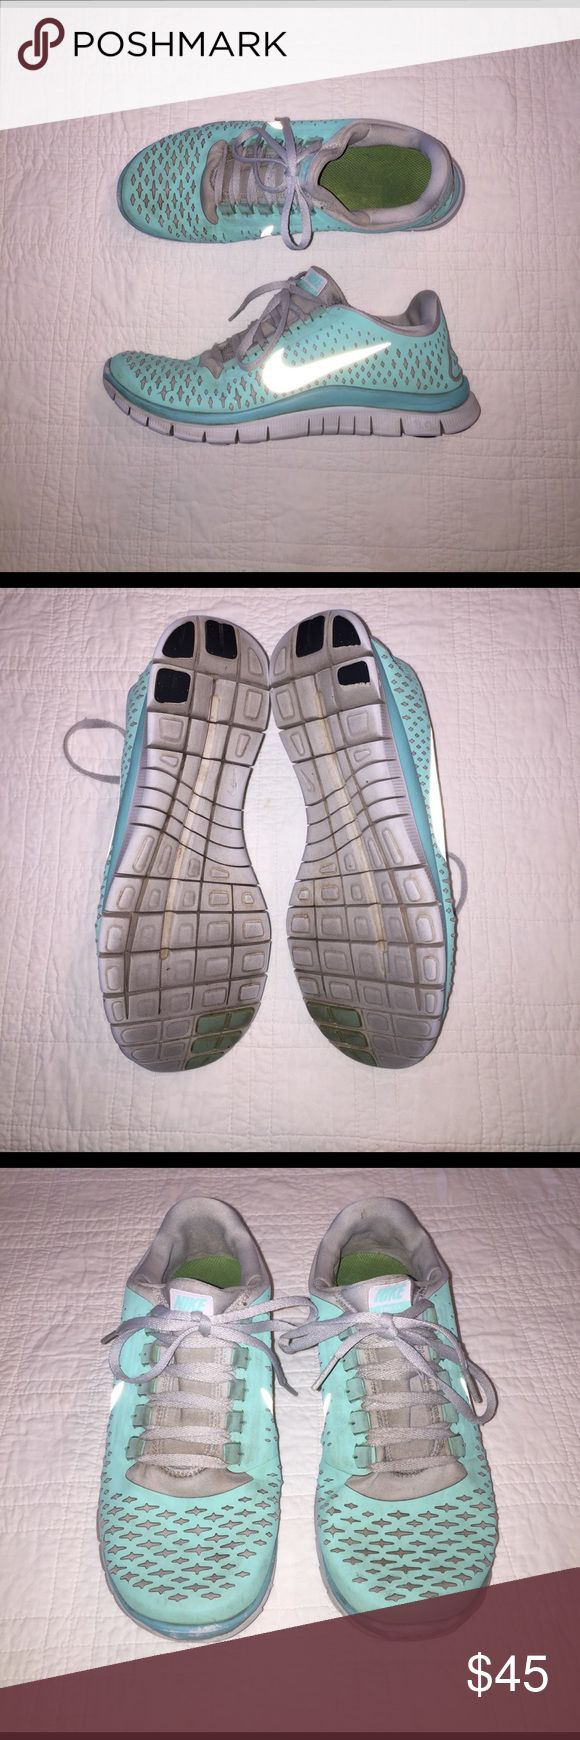 Tiffany Blue Nike 3.0 Free Runs Cute and comfy Tiffany Blue Nike Free Runs. **Very rare** There are a few scuffs on the toes from use. Selling them at $43 for the used condition. But I'm willing to negotiate offers! Nike Shoes Athletic Shoes